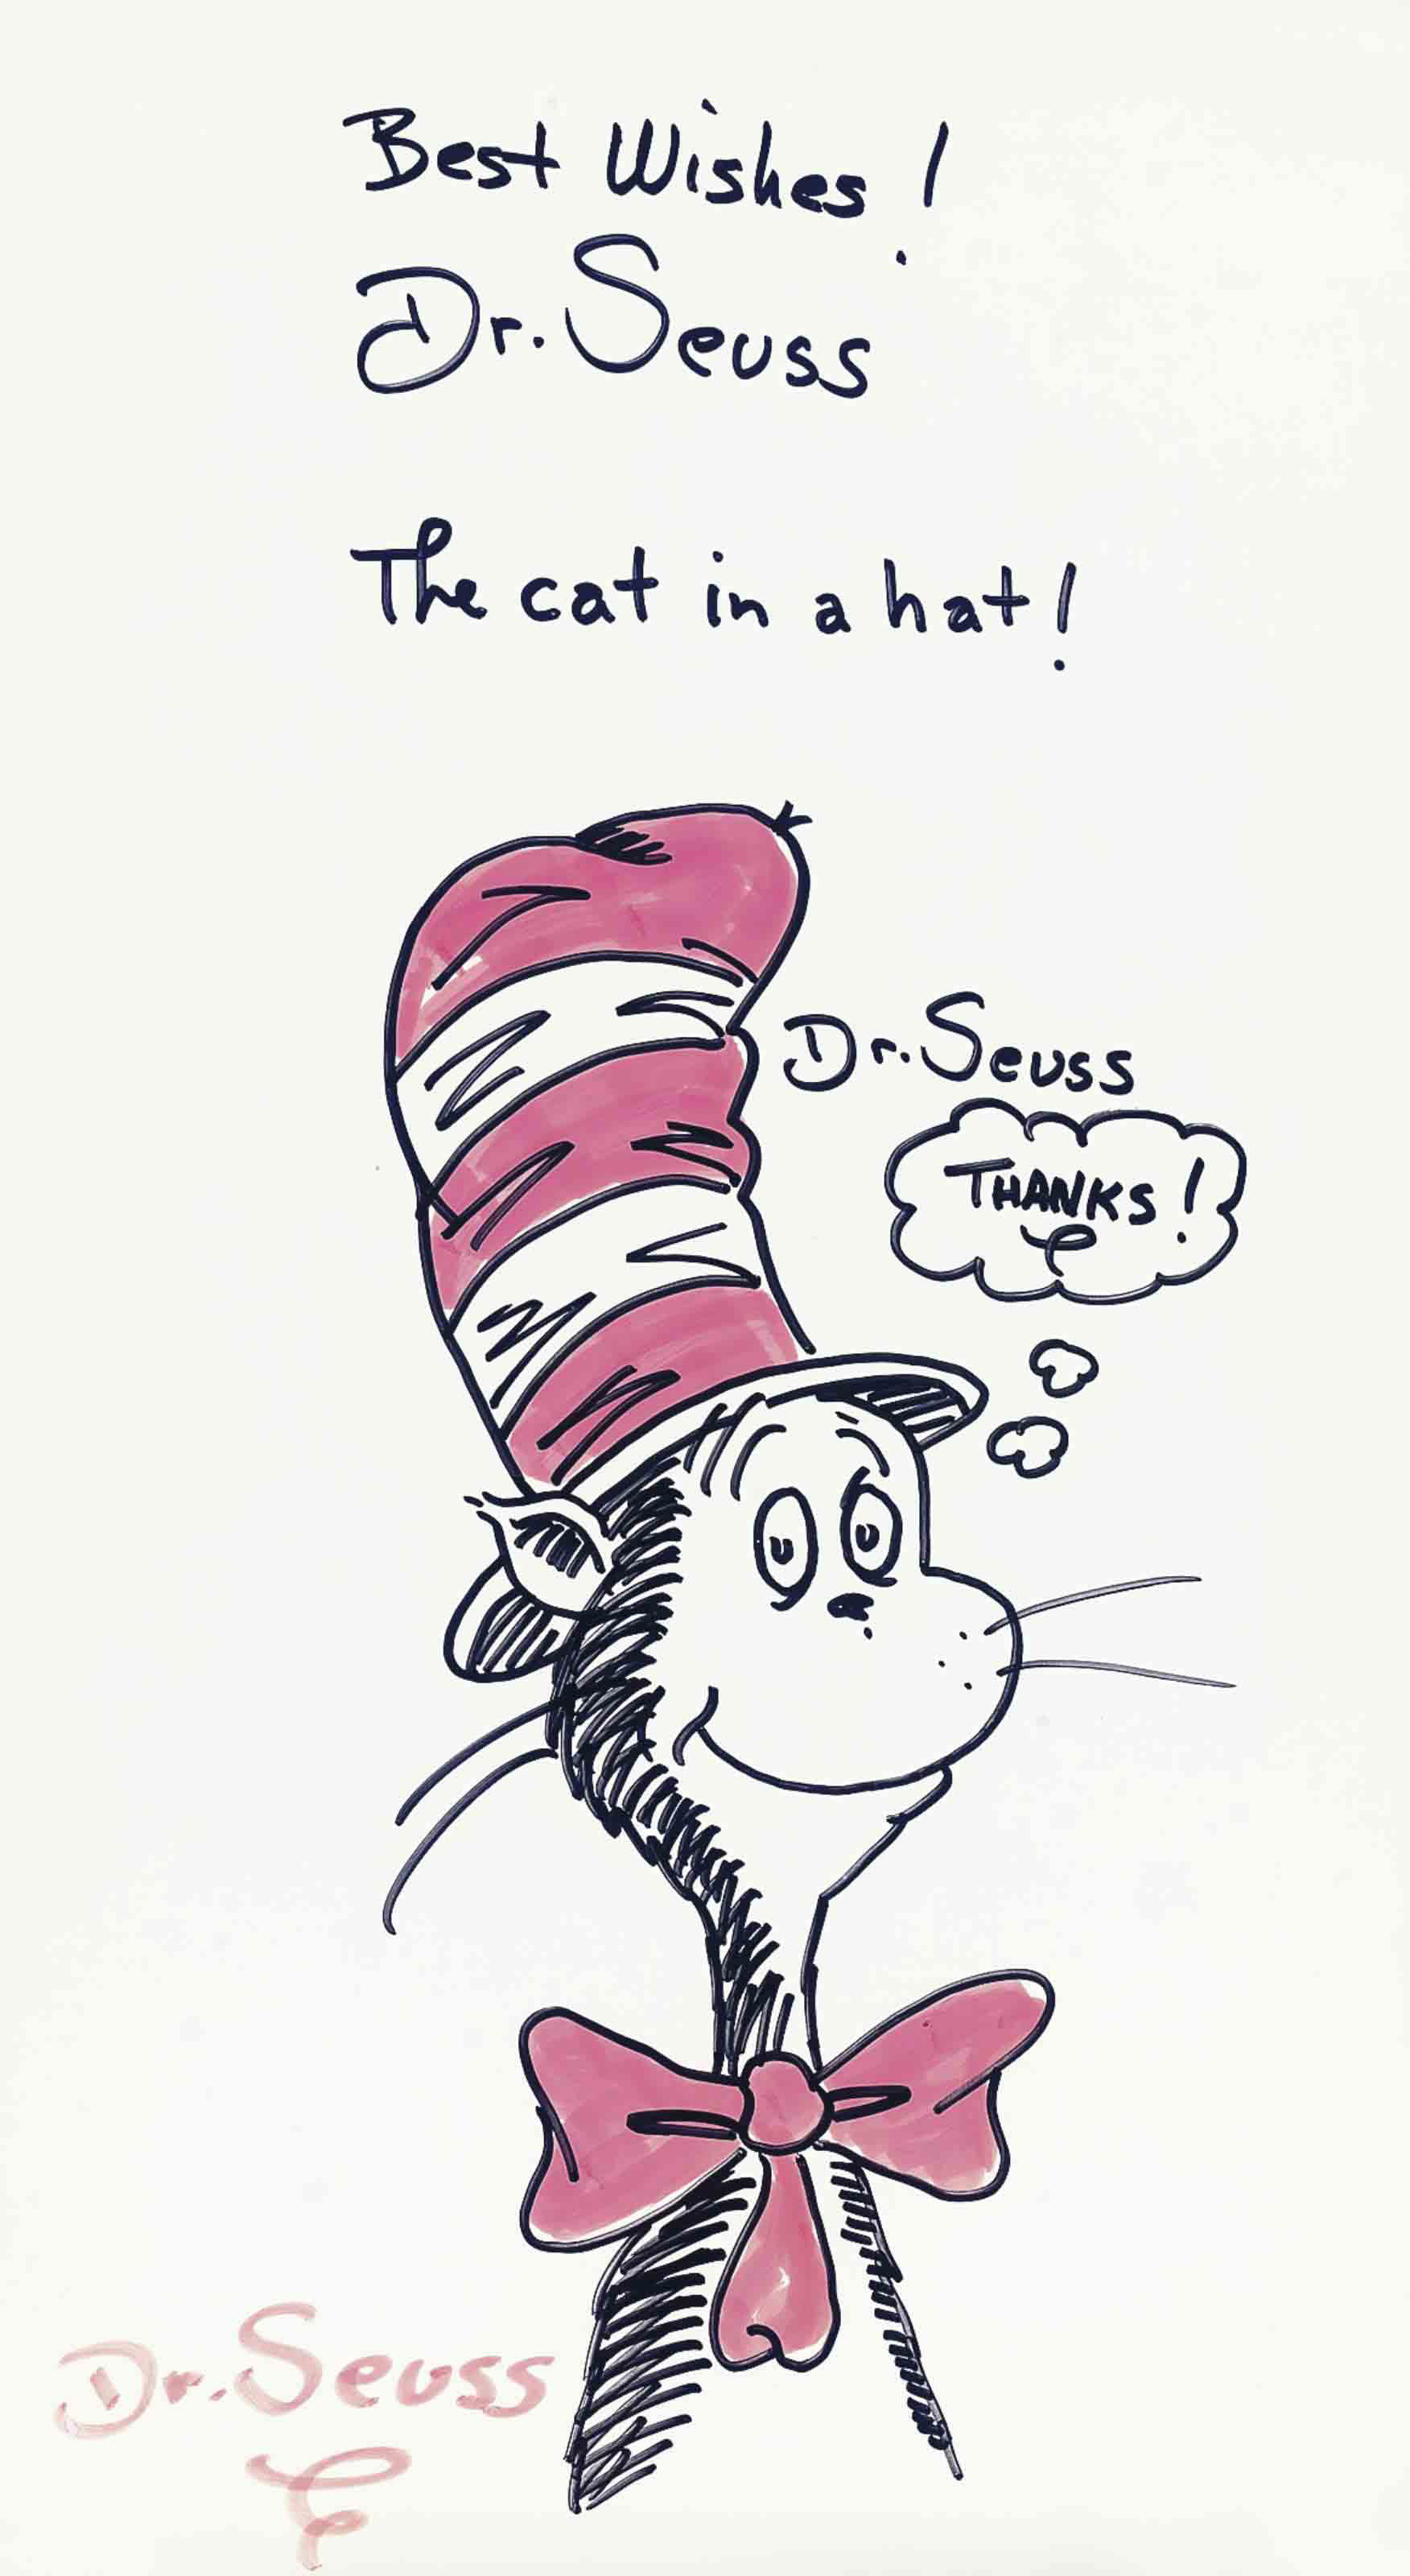 The cat in a hat!